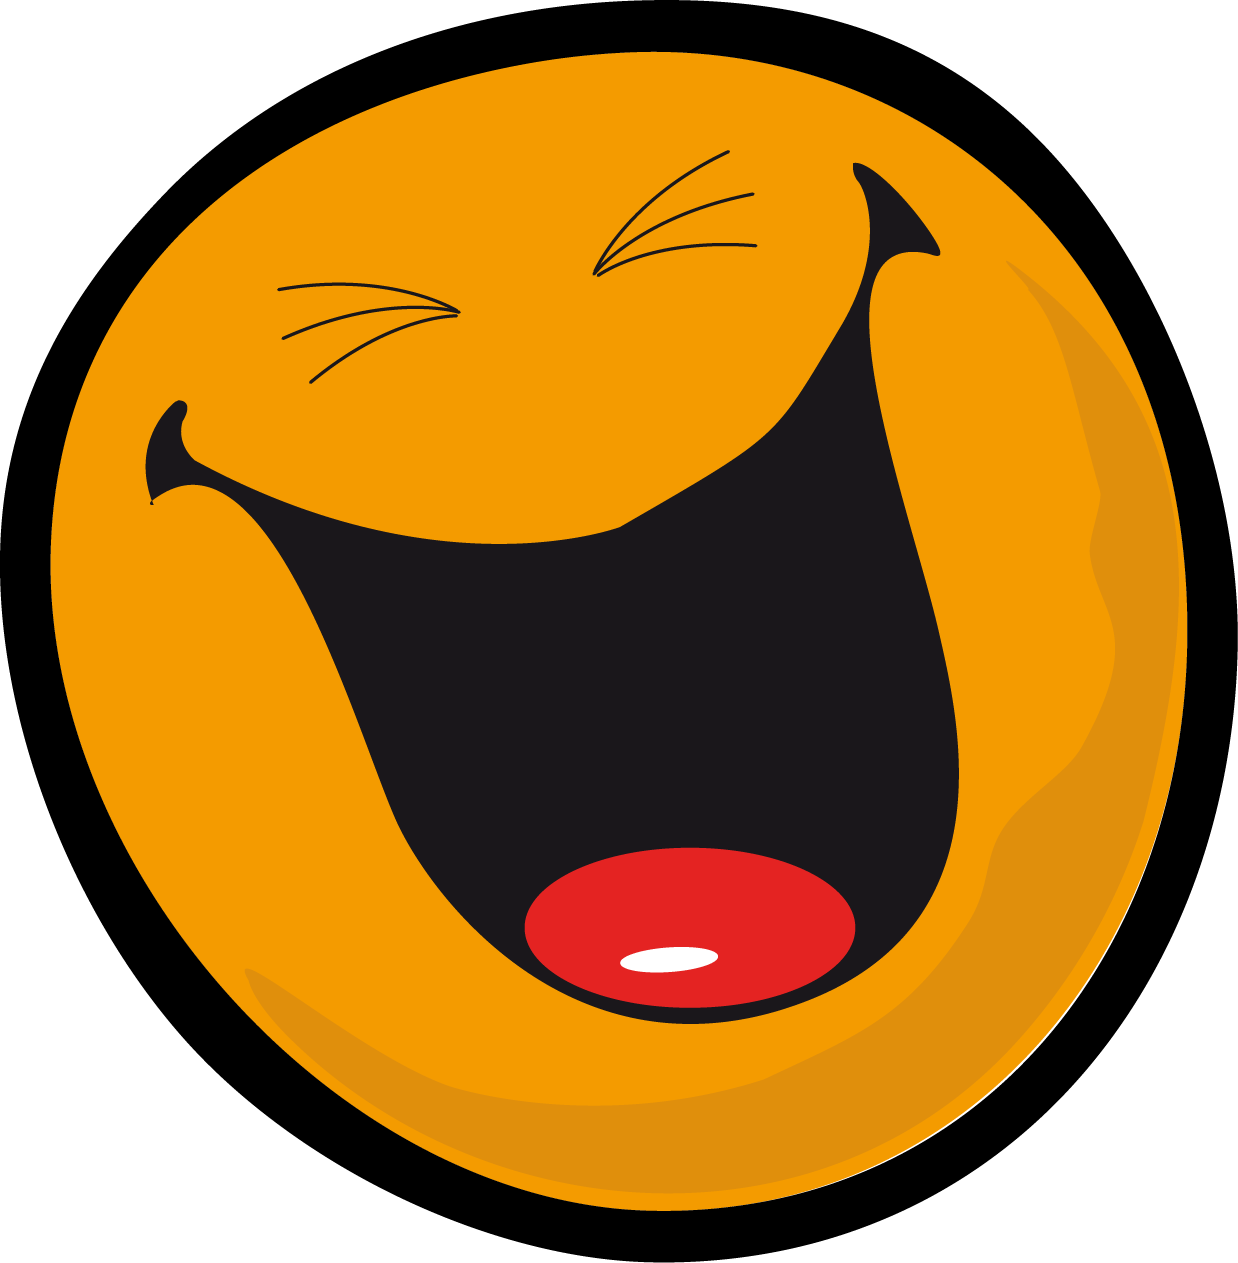 vector transparent Very face smiley clipartly. Laugh clipart